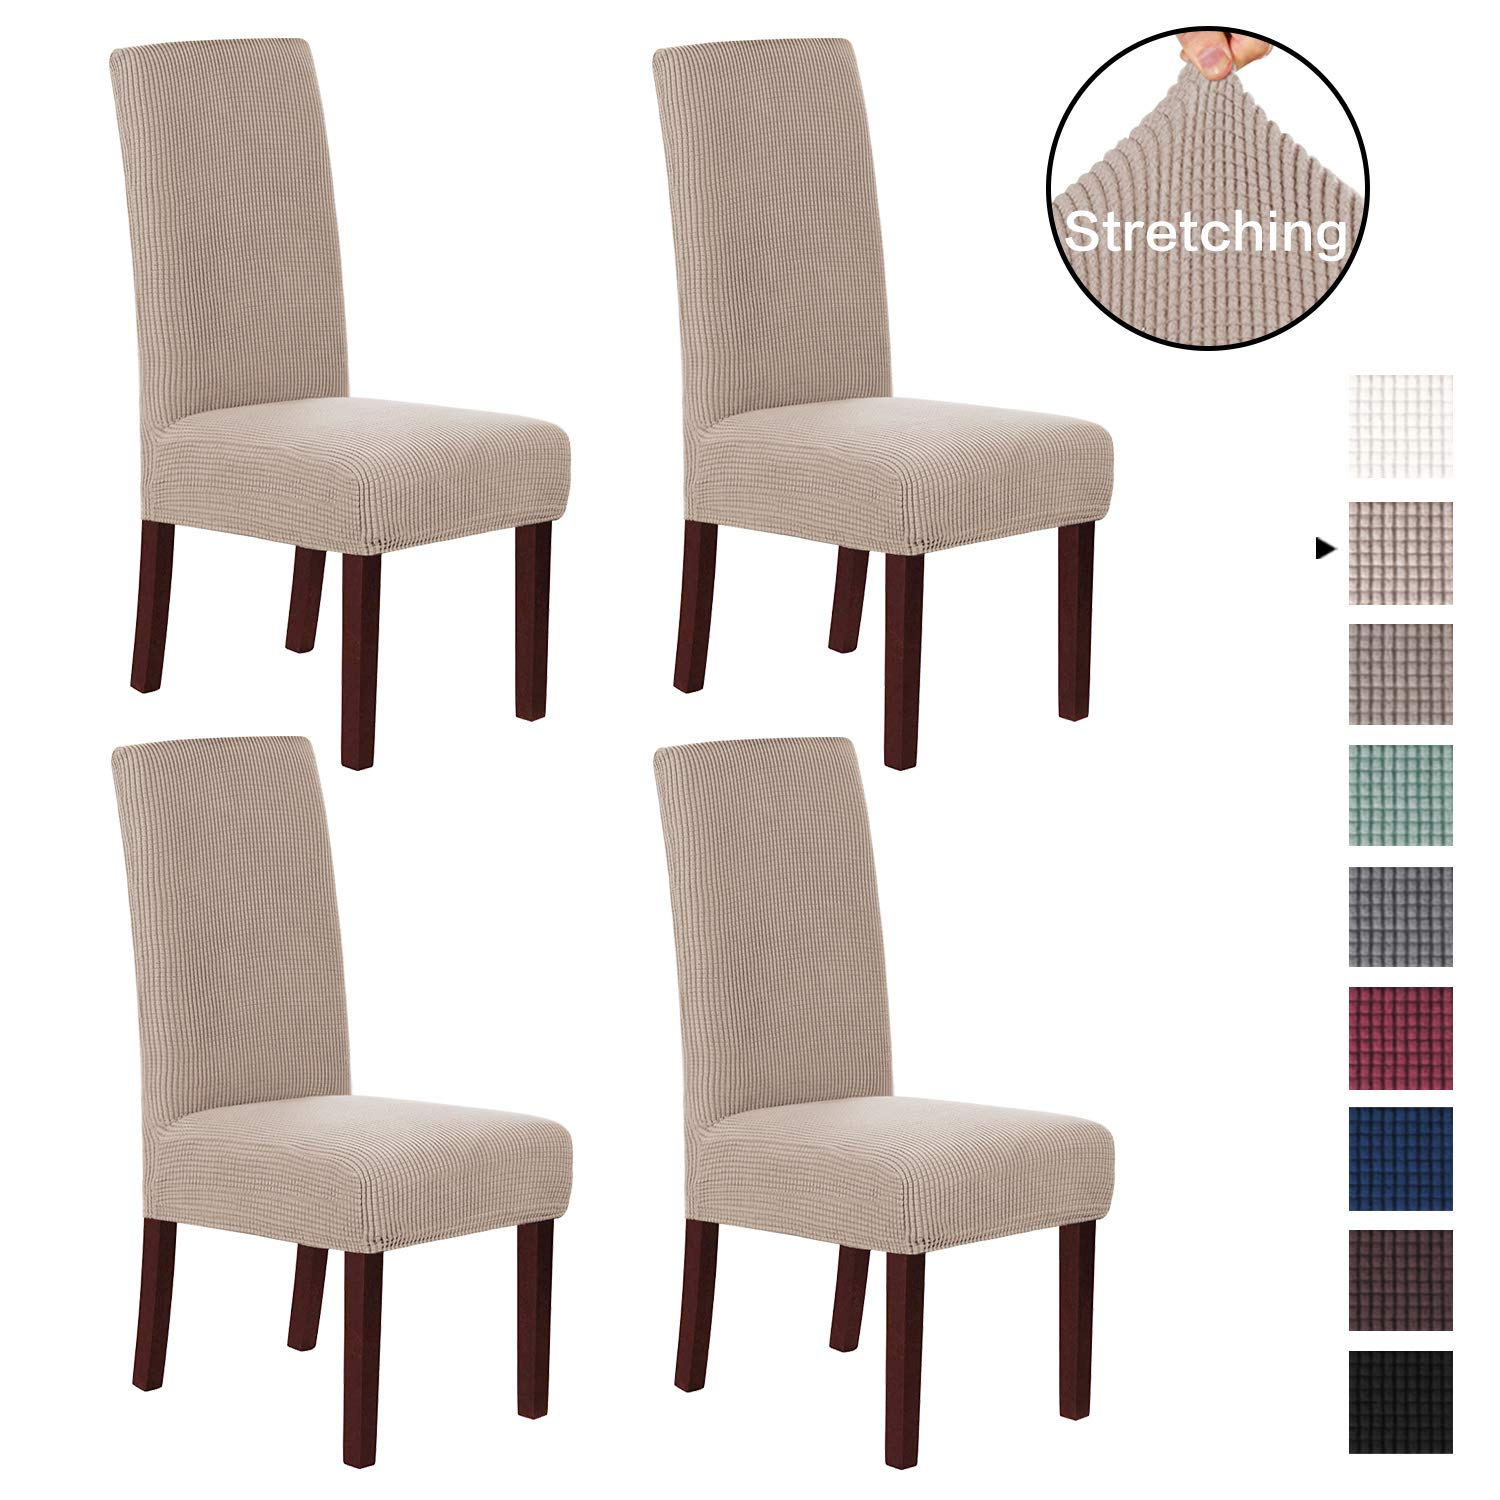 H.VERSAILTEX Dining Chair Slipcover High Stretch Jacquard Dining Room Chair Slipcovers Sets Washable Removable Chair Slipcover Dining Chair Protector Cover for Dining Room, Set of 4, Sand